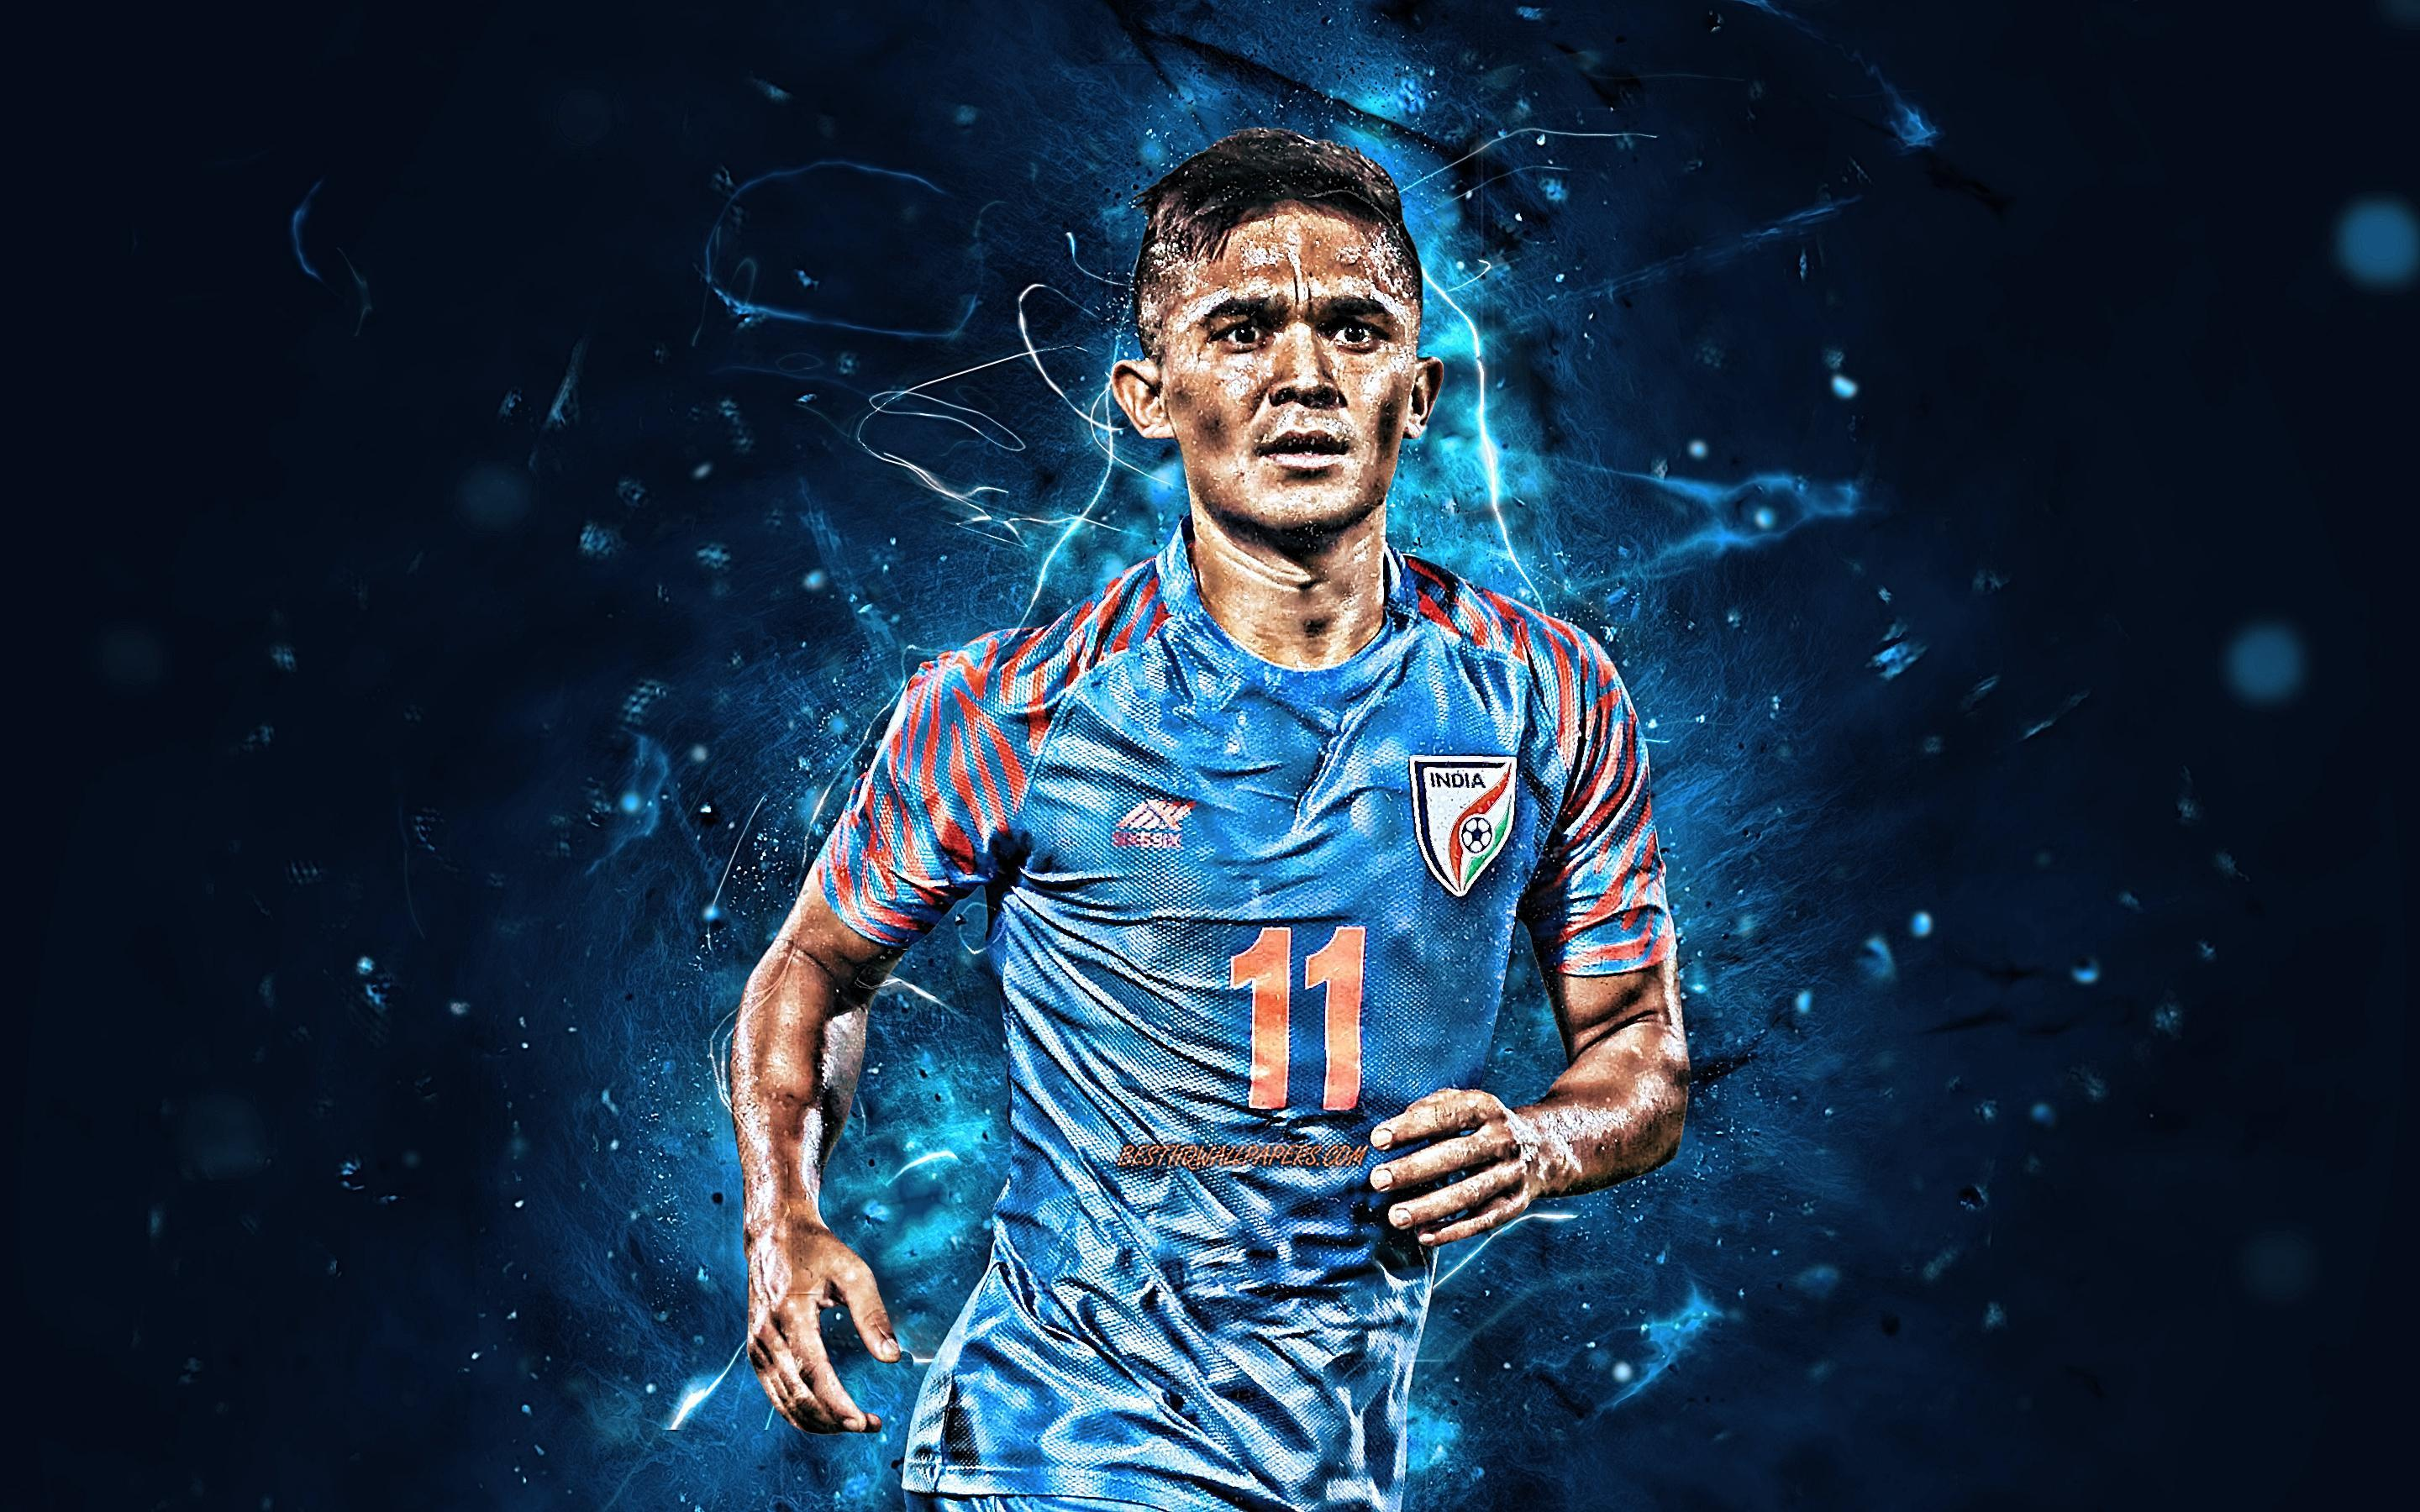 best service 58deb dc57e India National Football Team Wallpapers - Wallpaper Cave